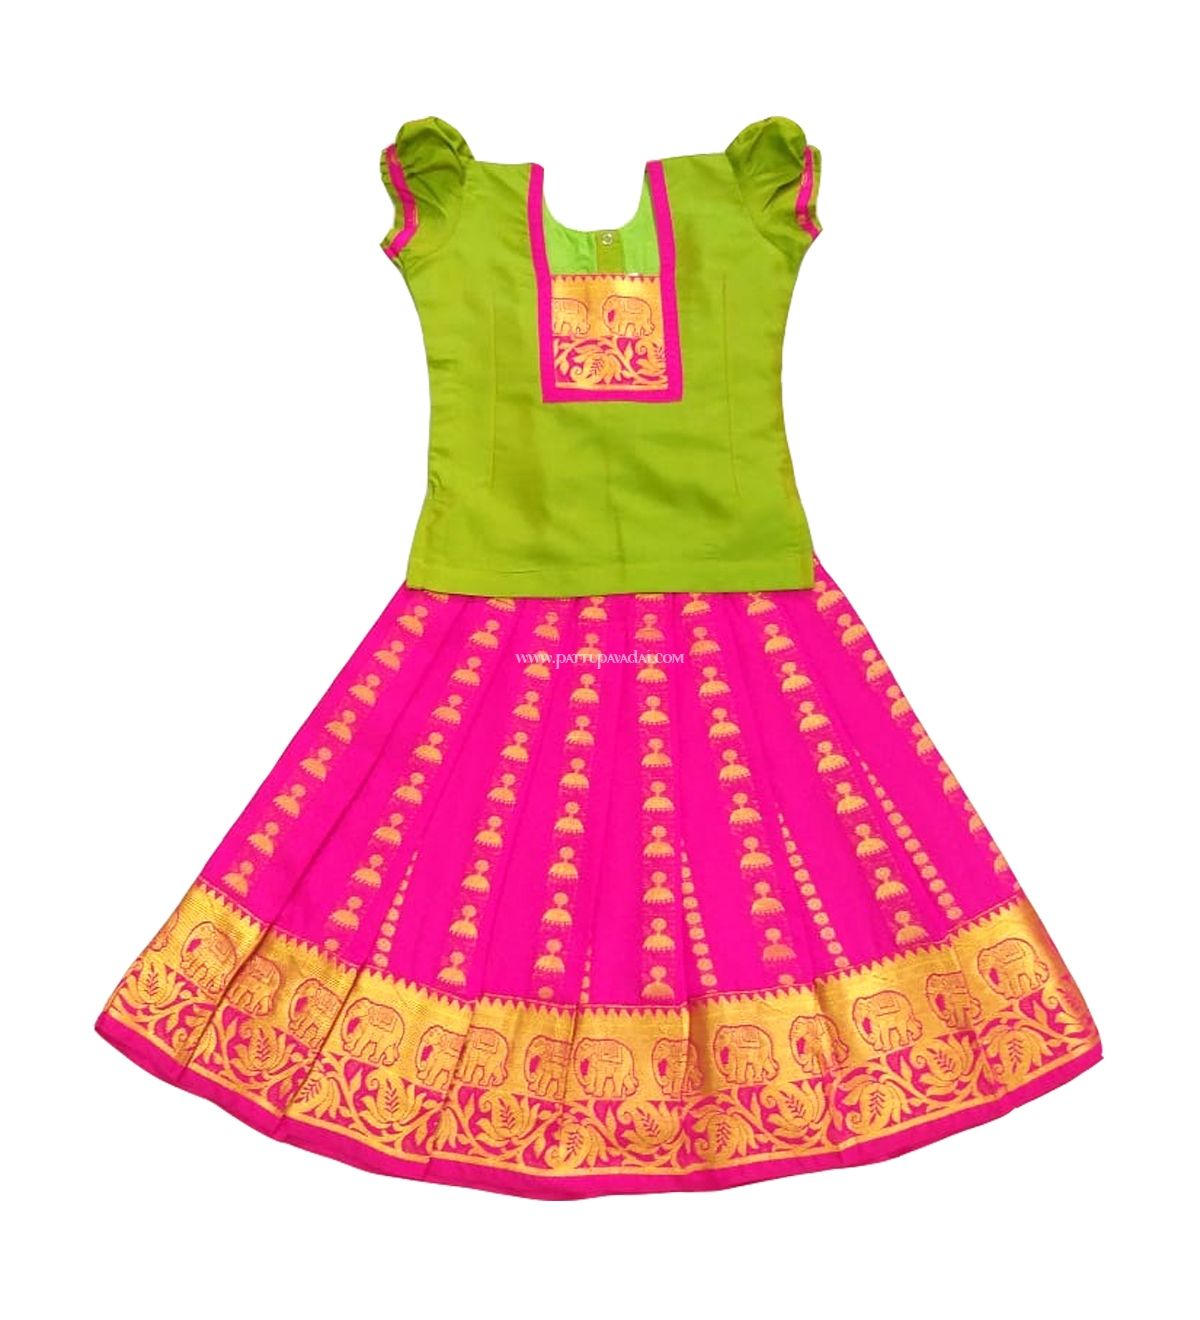 9629f878c7 Fantastic Jhumka silk prints skirt in attractive pink and puff-sleeved top  in parrot green colour.